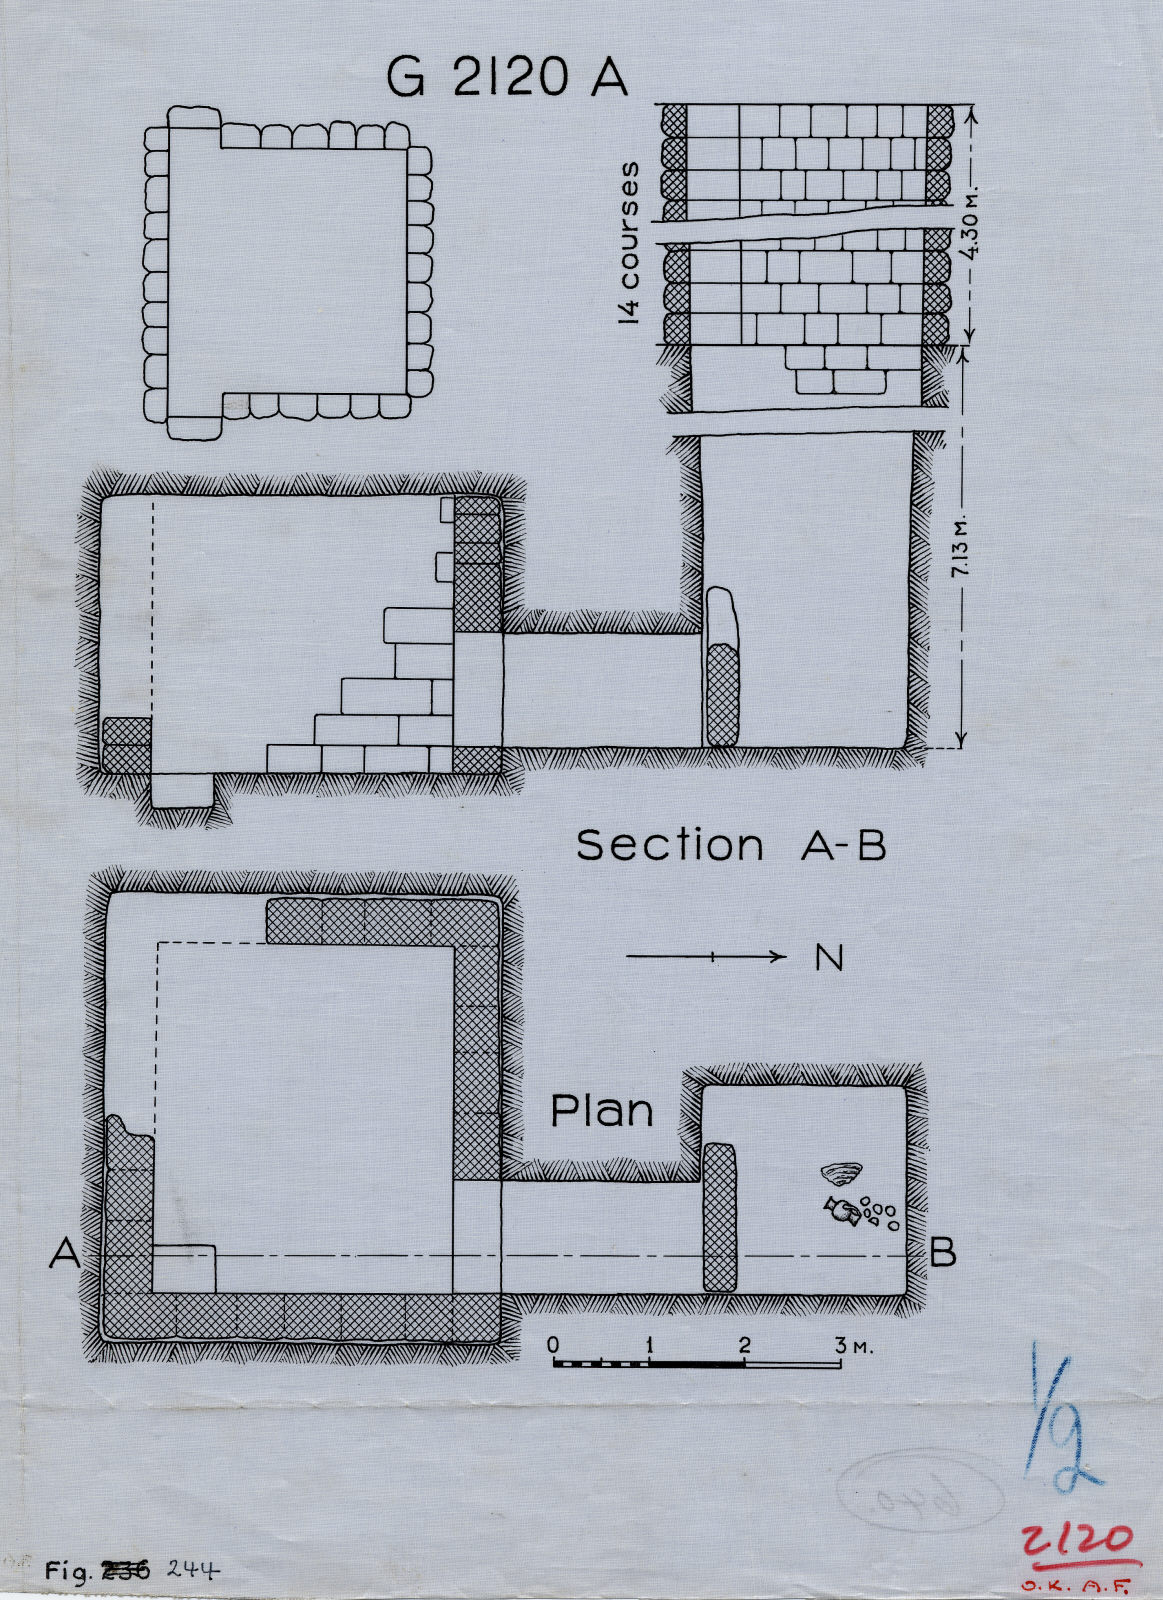 Maps and plans: G 2120 Shaft A